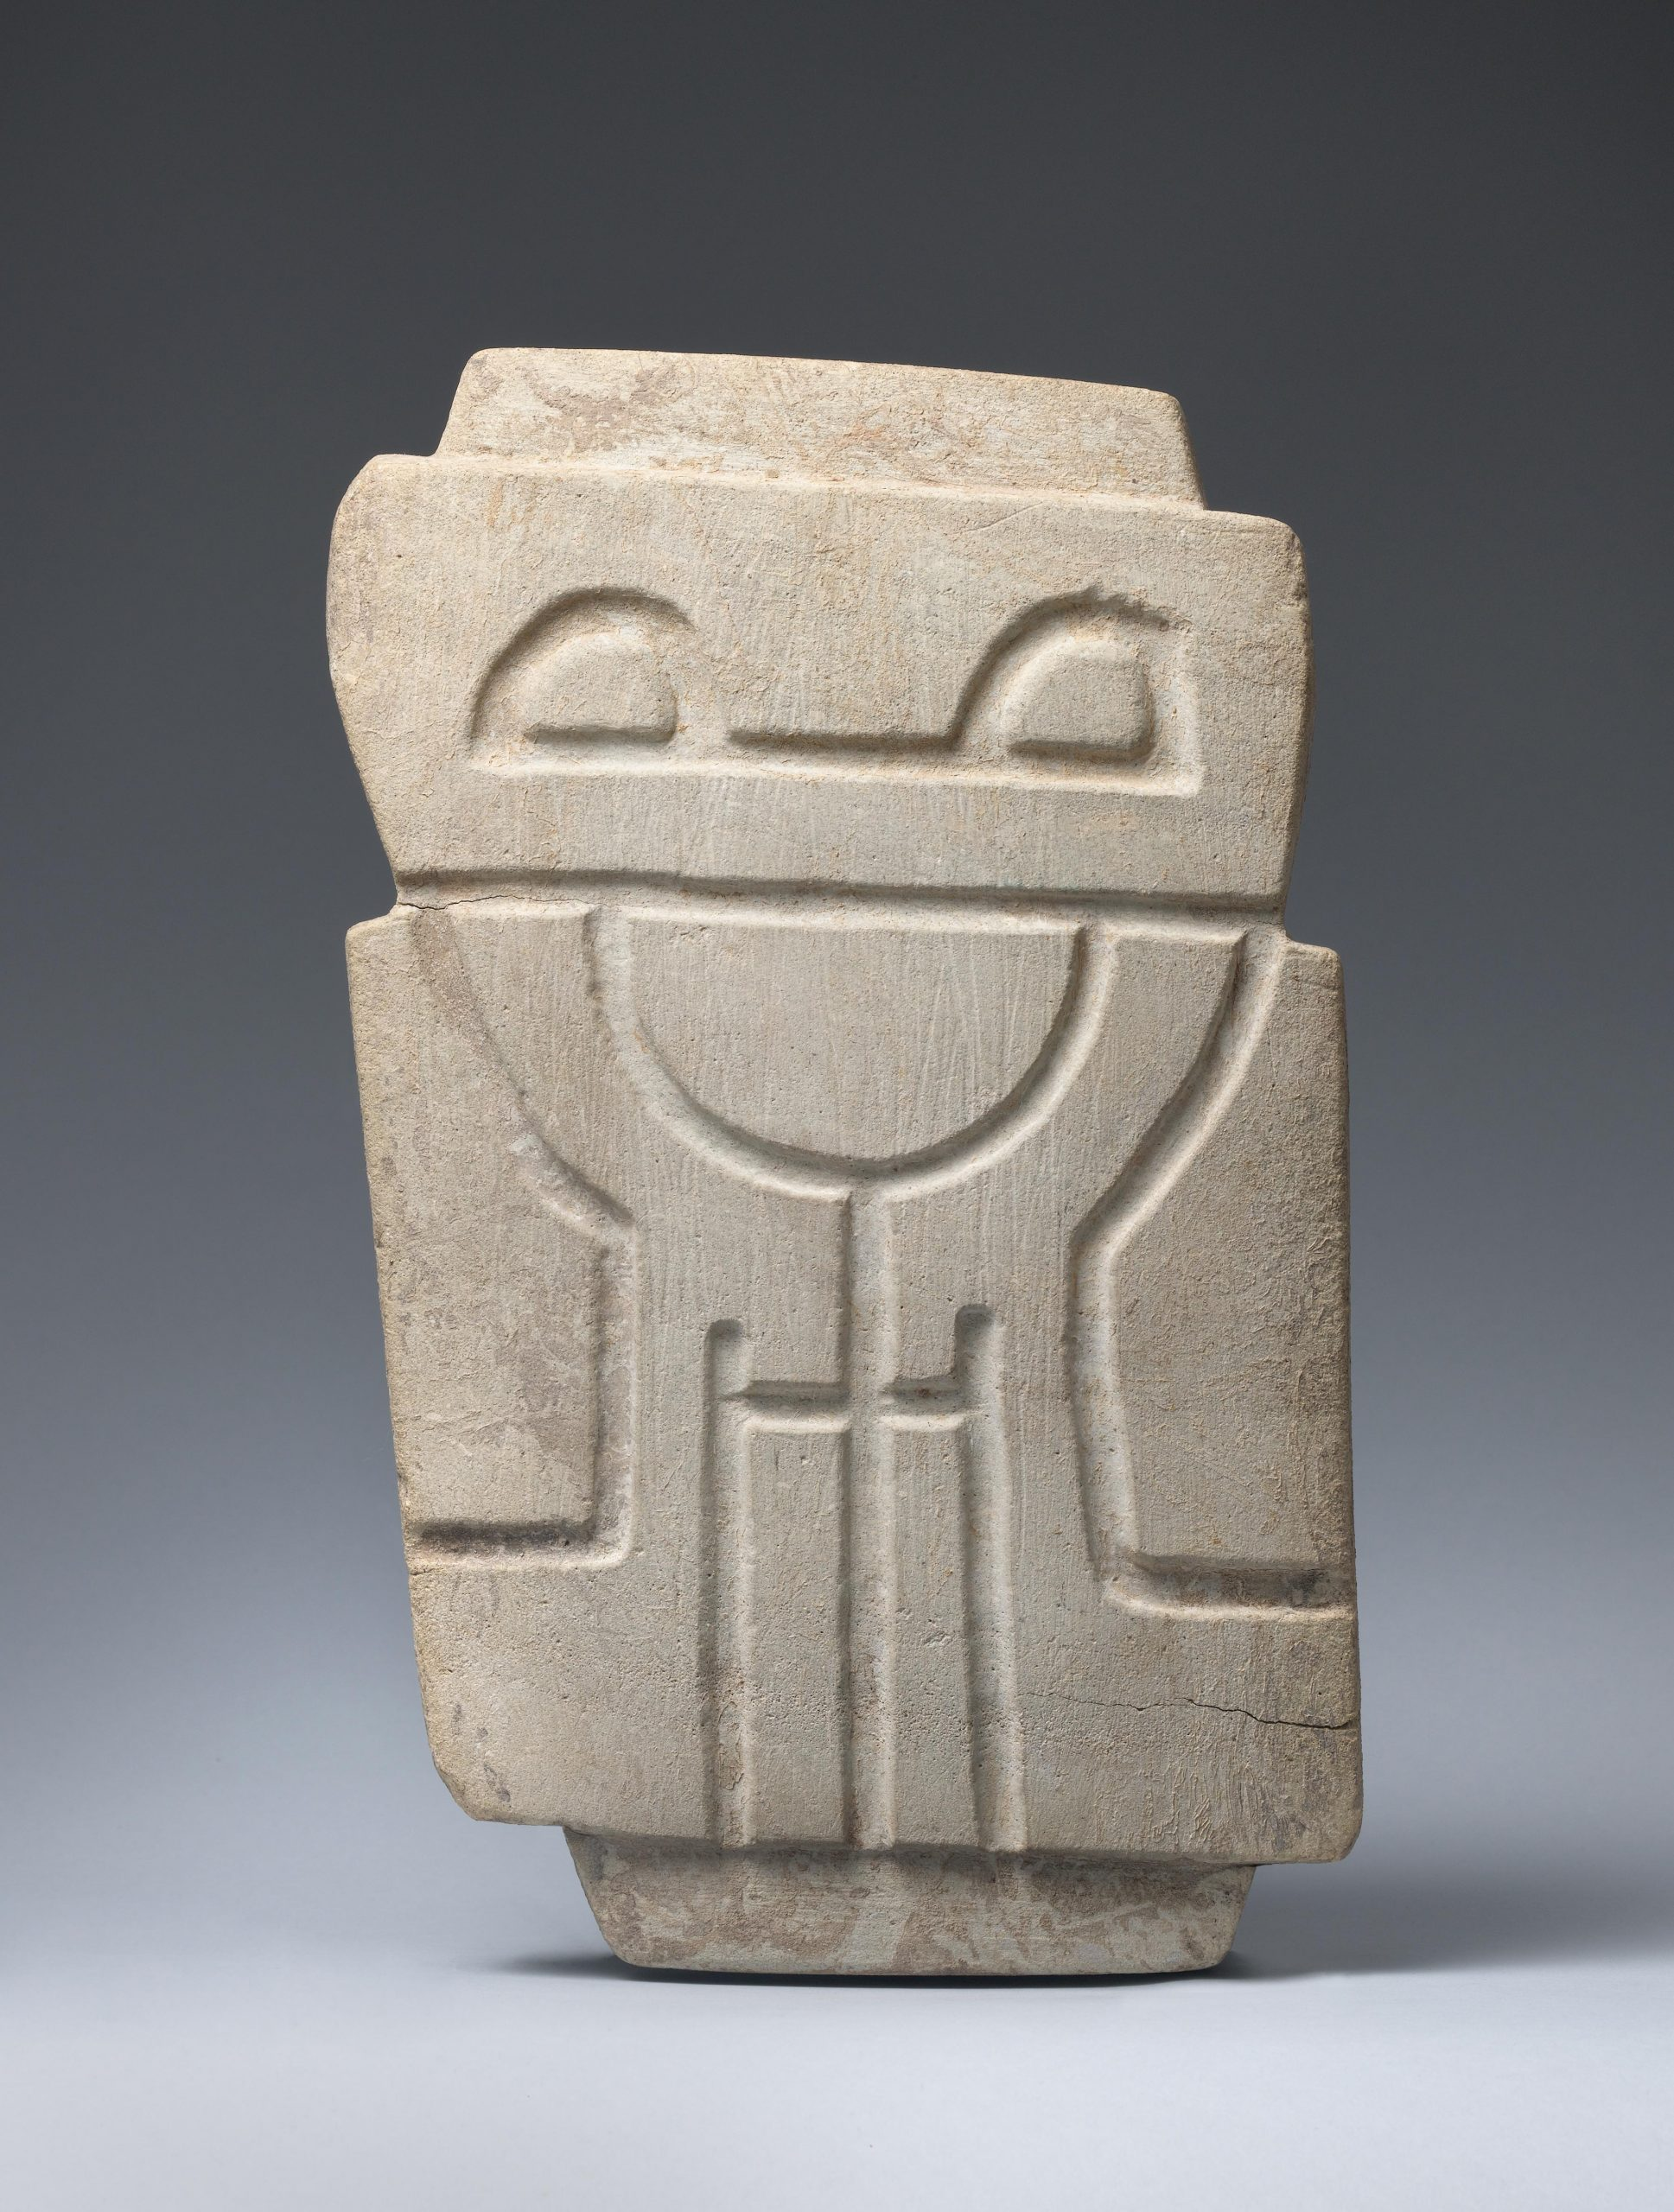 Abstract stone sculpture of a standing figure with indentations indicating facial features and arms at torso.